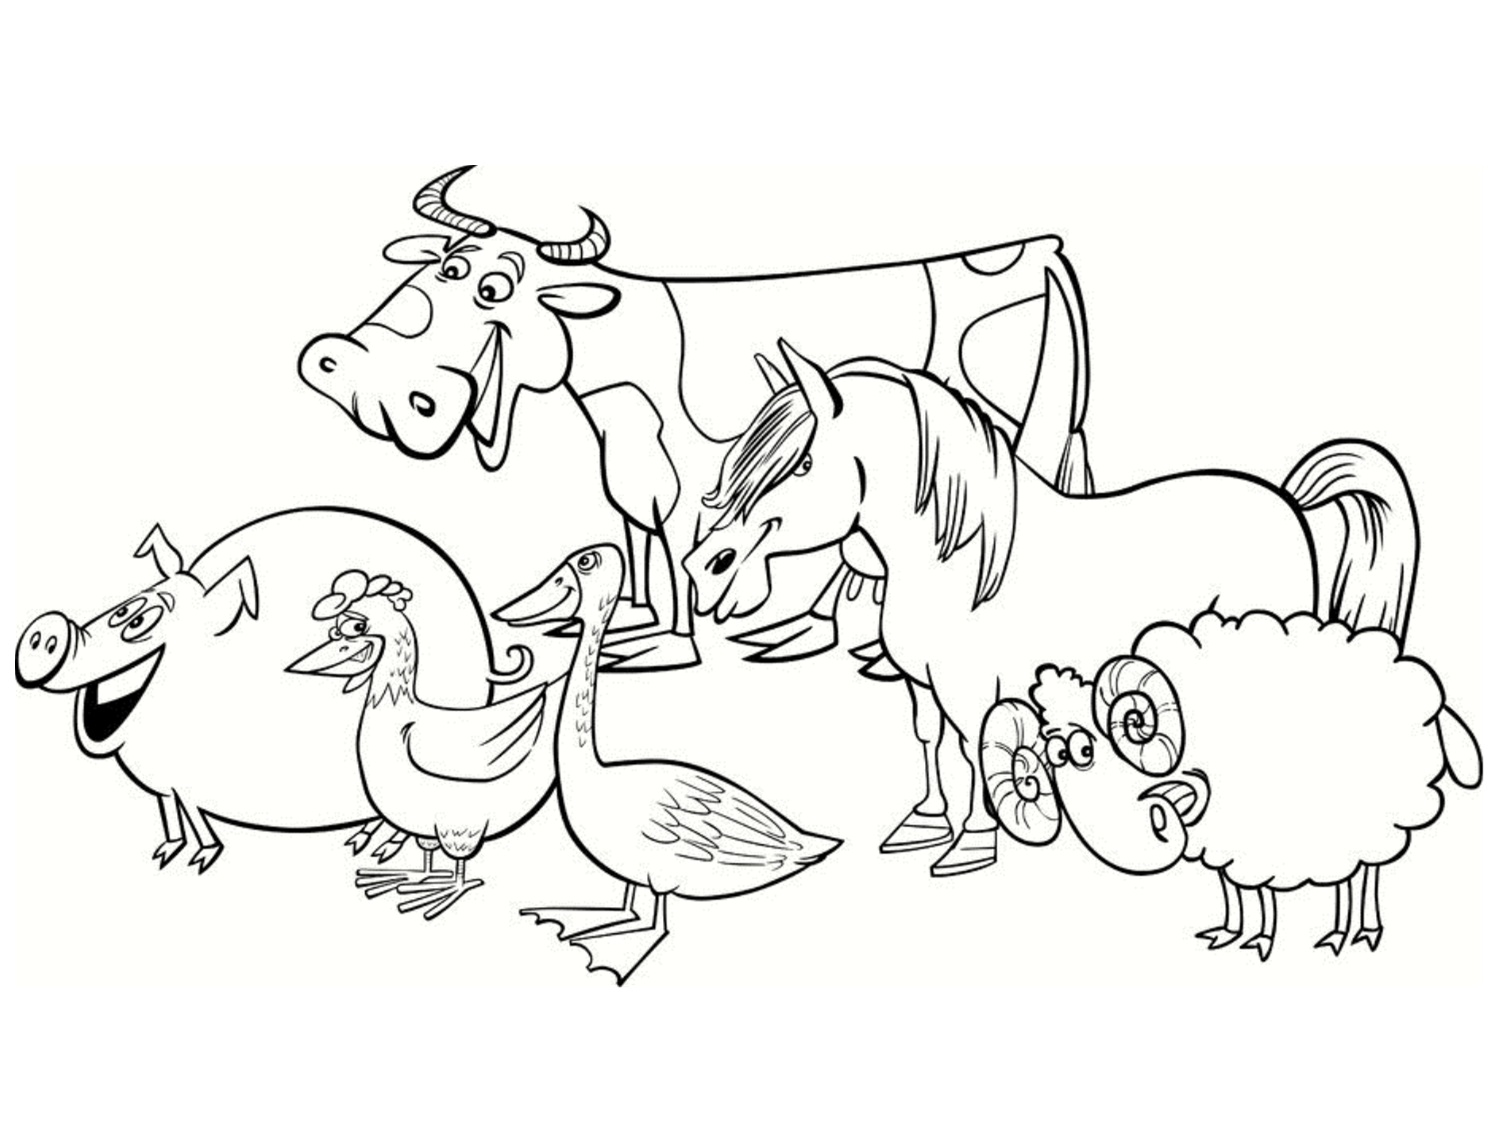 Funny Farm coloring page for kids